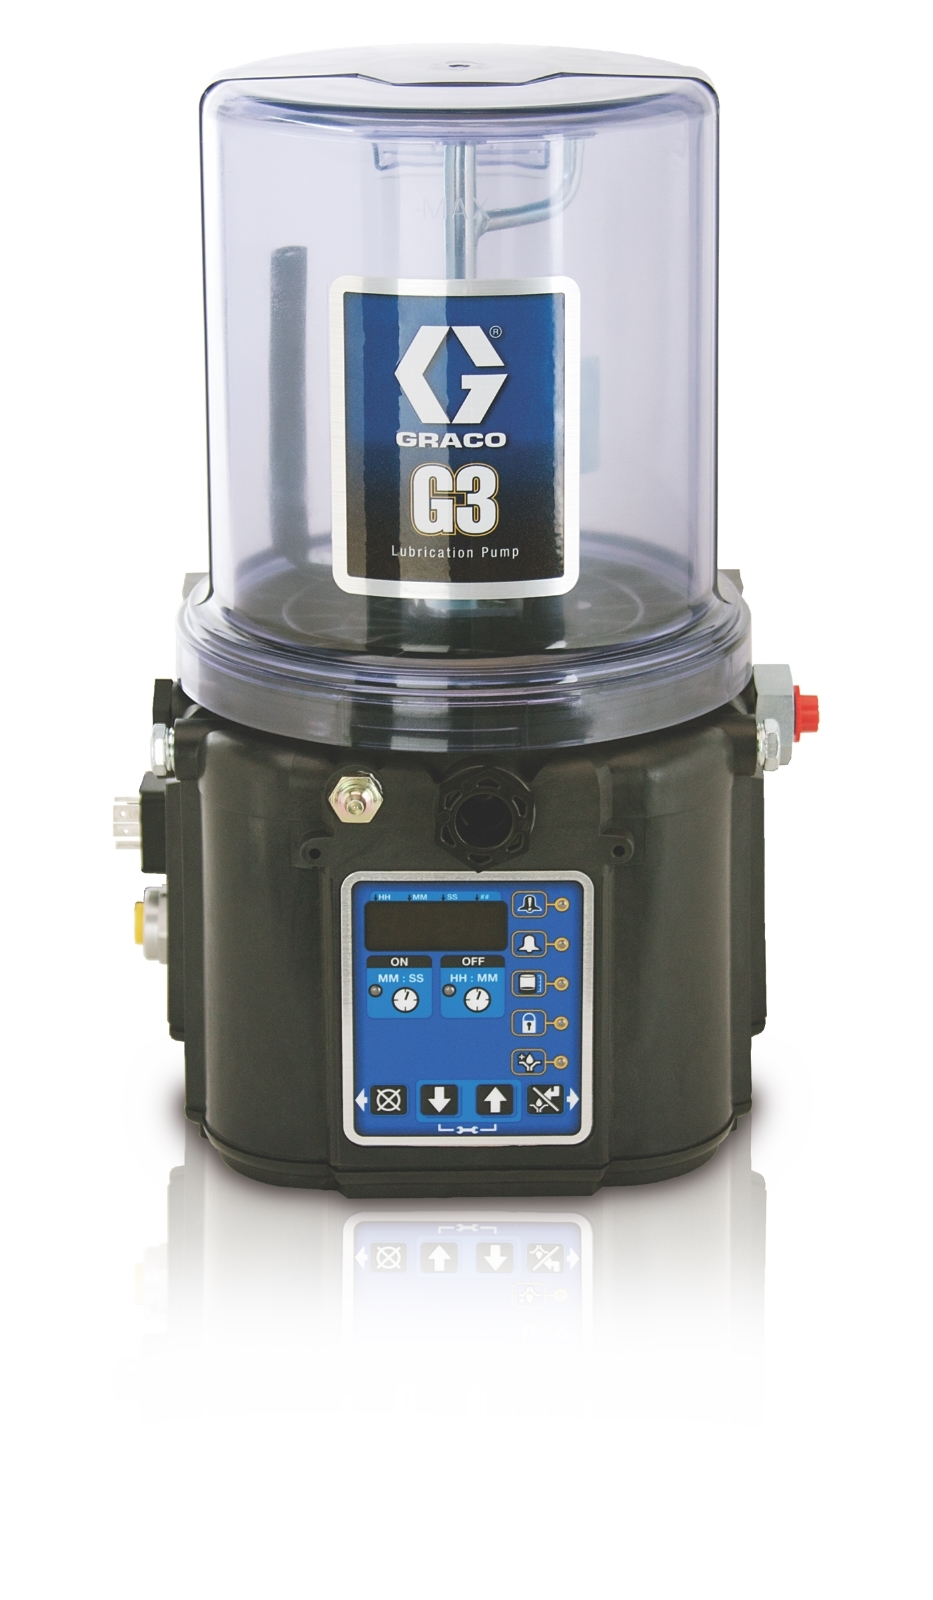 G3™ Pro Oil Lubrication Pump, 24 VDC, 4 Liter, Low Level with